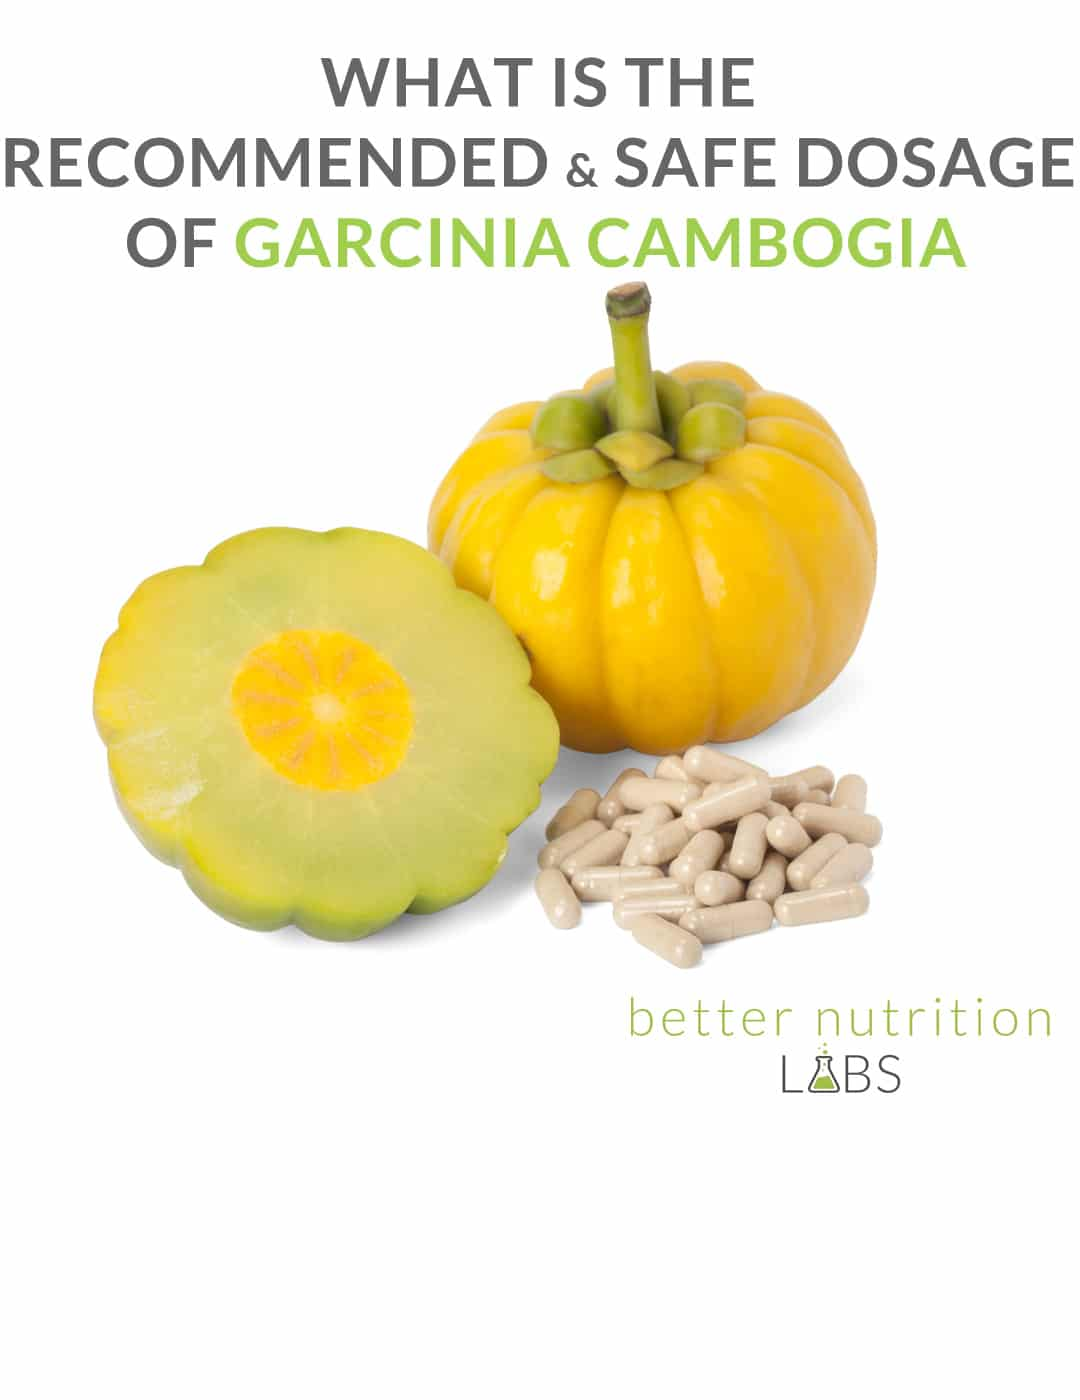 what is recommended safe dosage of garcinia cambogia - What is the recommended & safe daily dosage of Garcinia Cambogia?